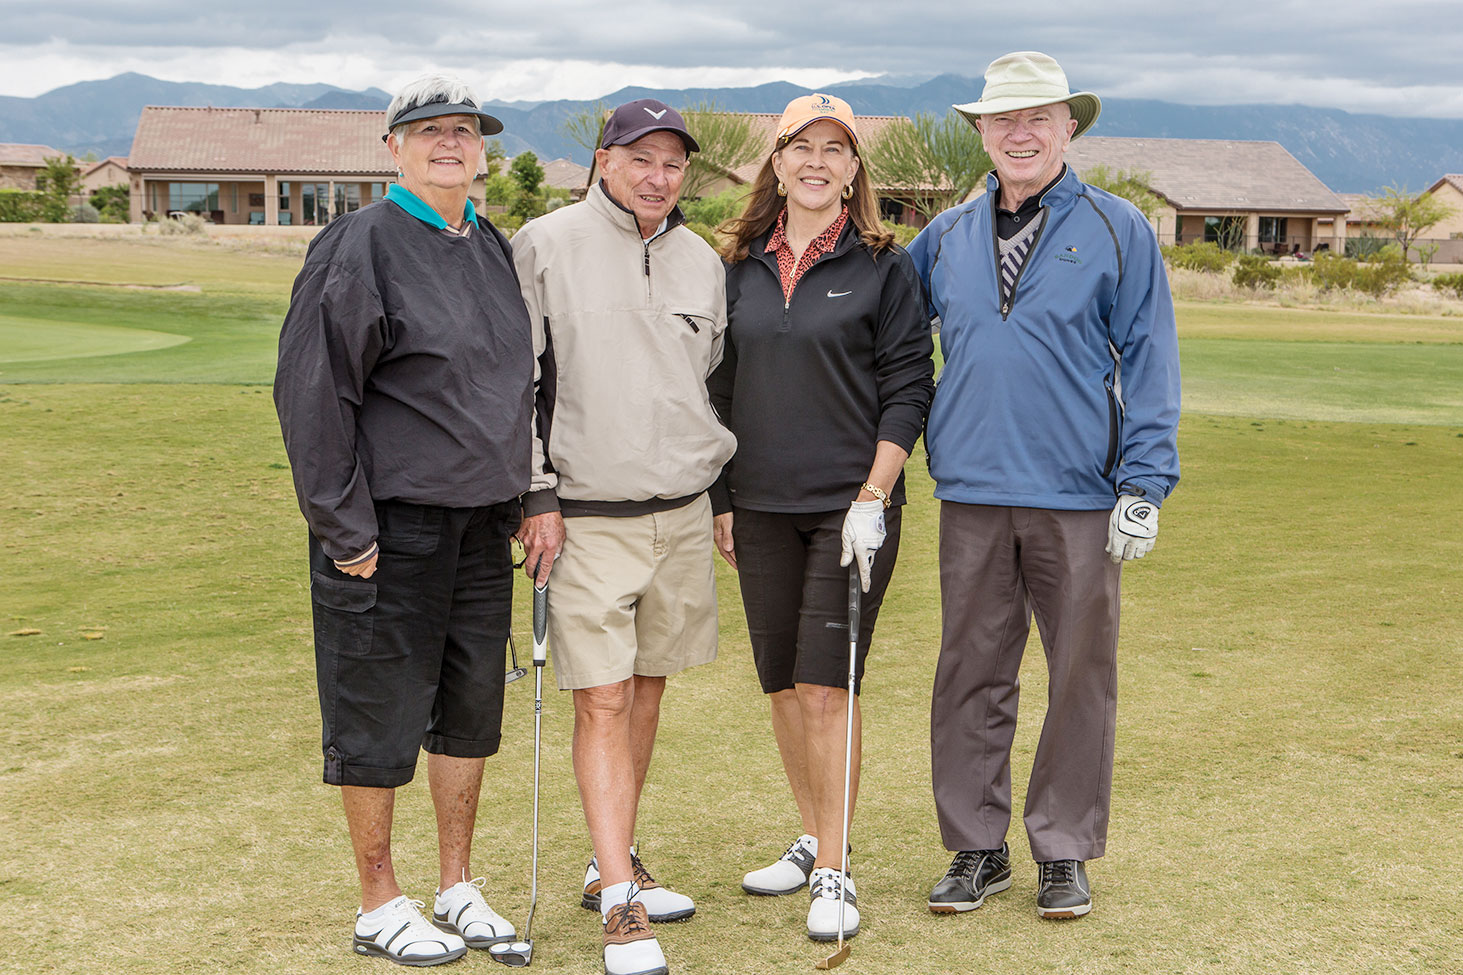 Third place from left are Joyce DeYoung, John DeYoung, Brenda Armenia and Greg Byrne